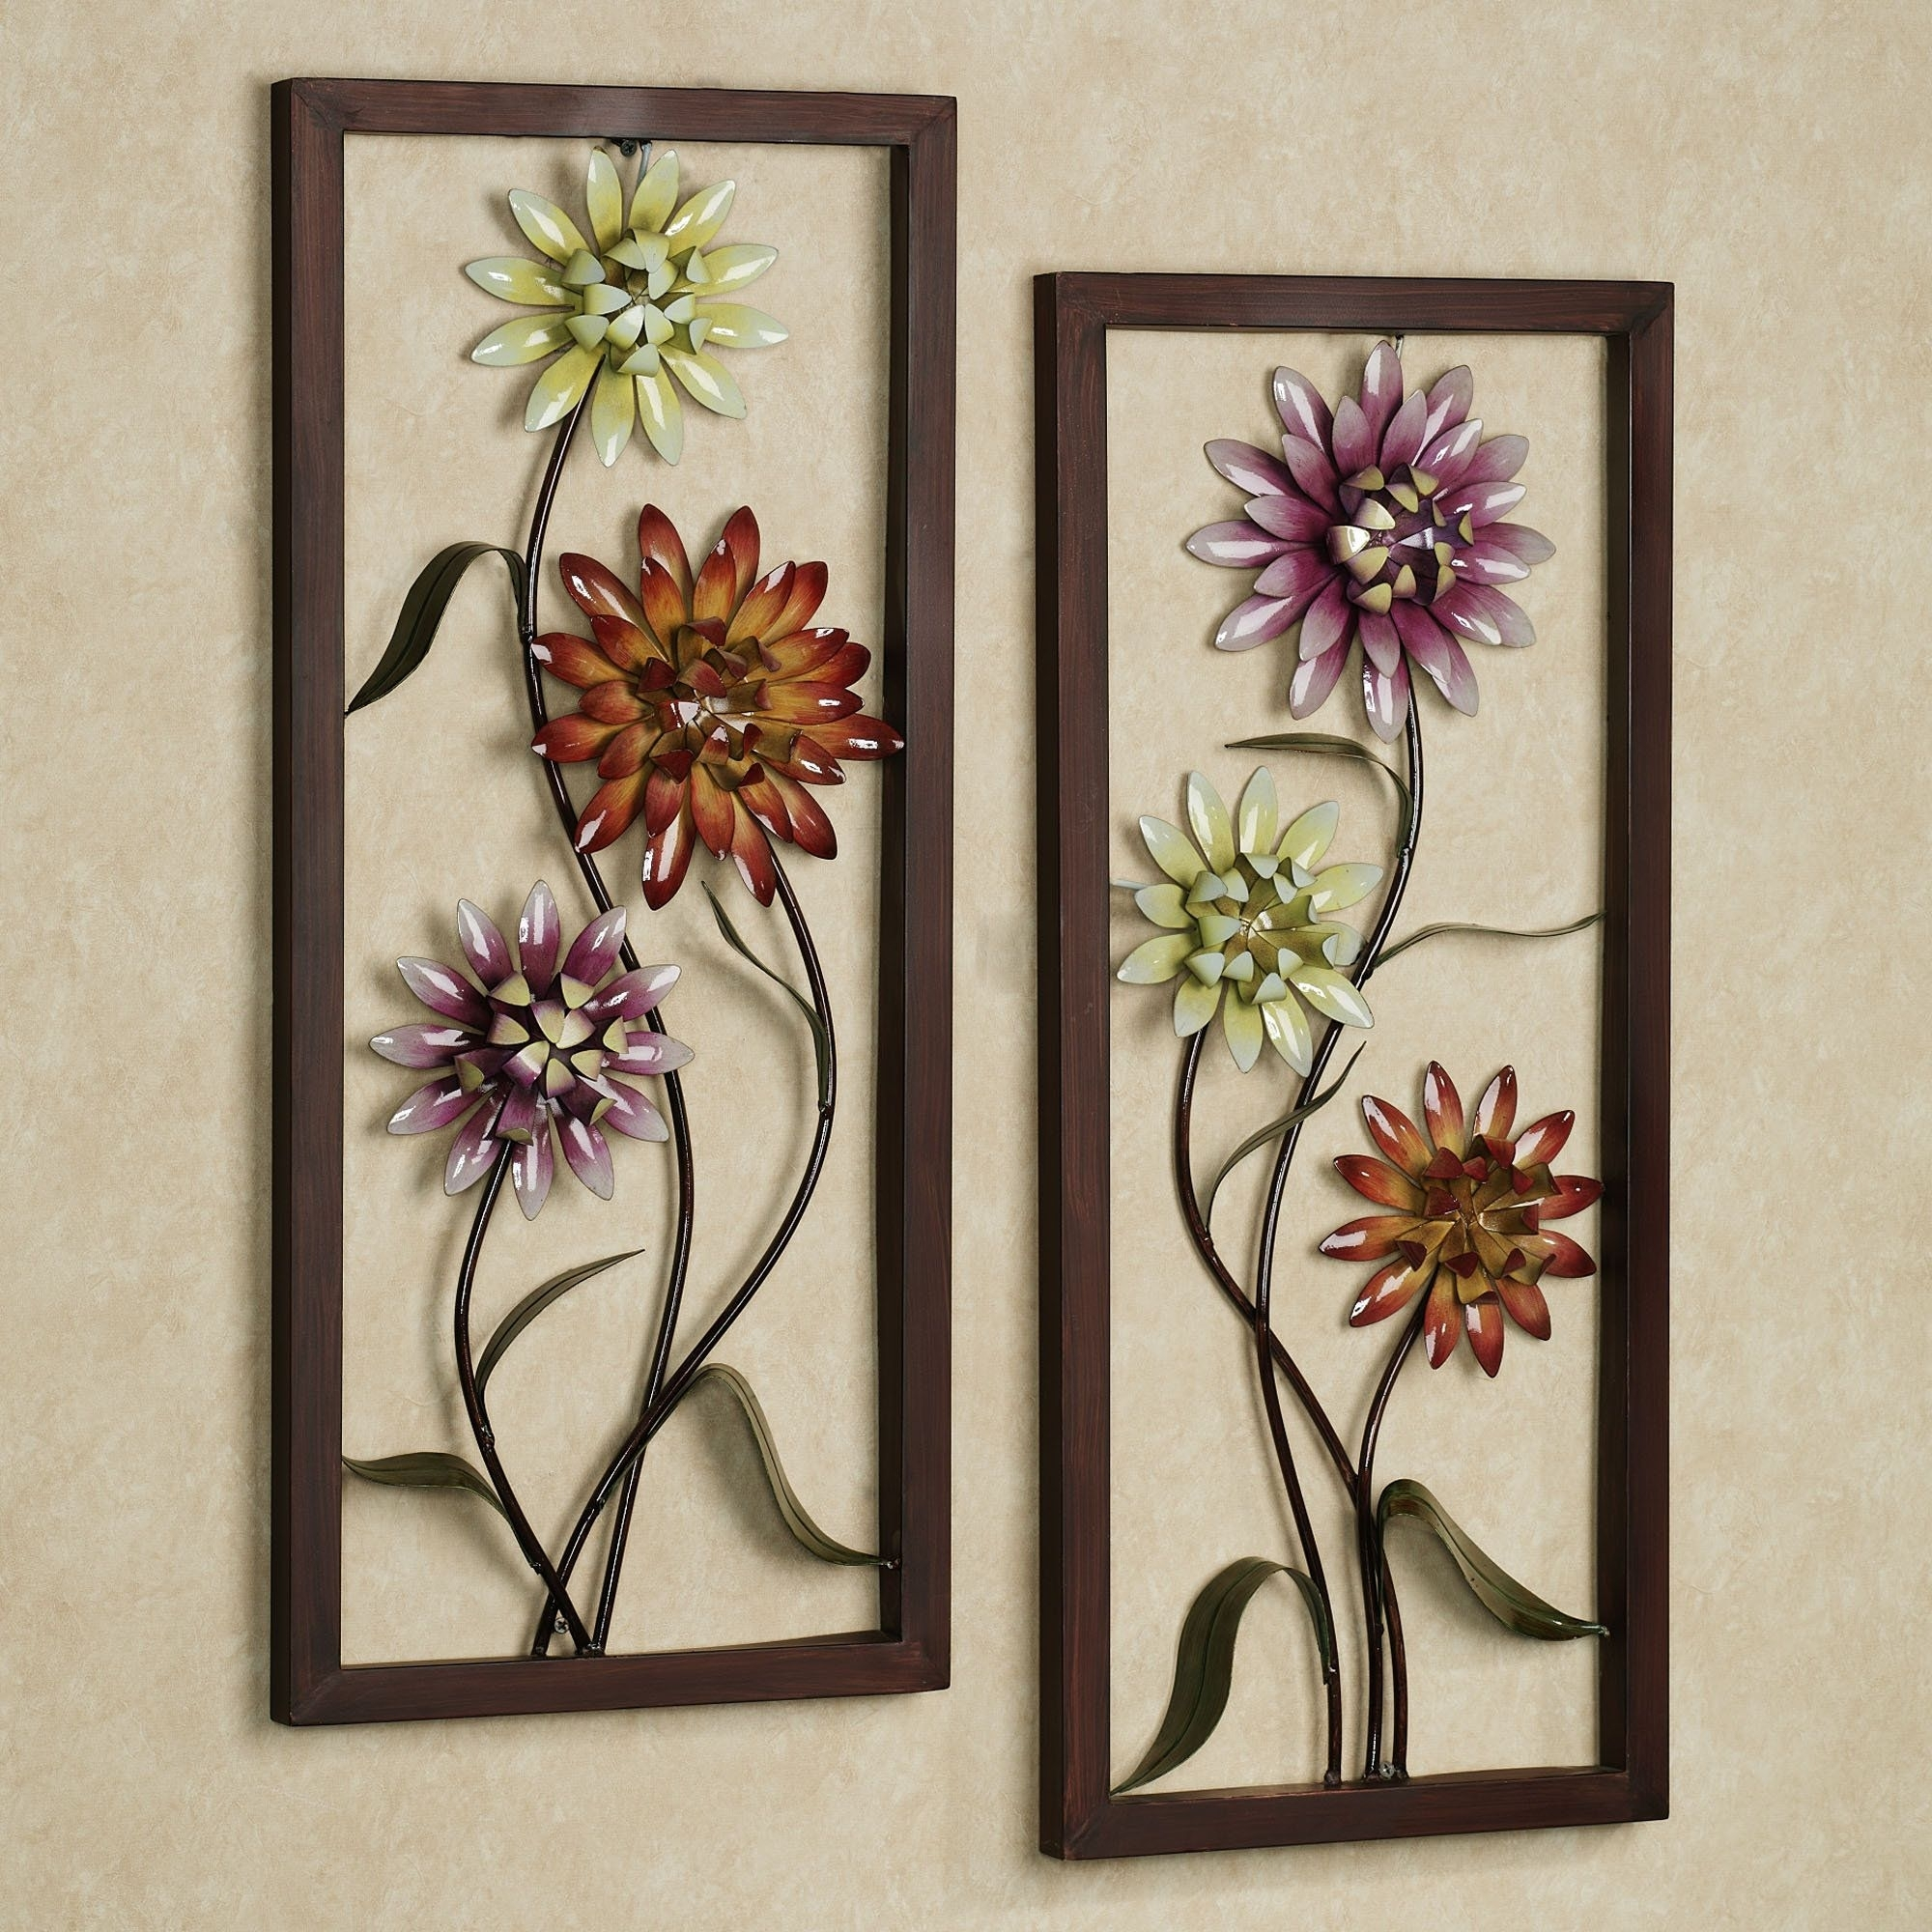 Some Ideas For Your Bathroom Wall Decor: Bathroom Wall Art For Intended For Latest Flowers Wall Accents (View 15 of 15)